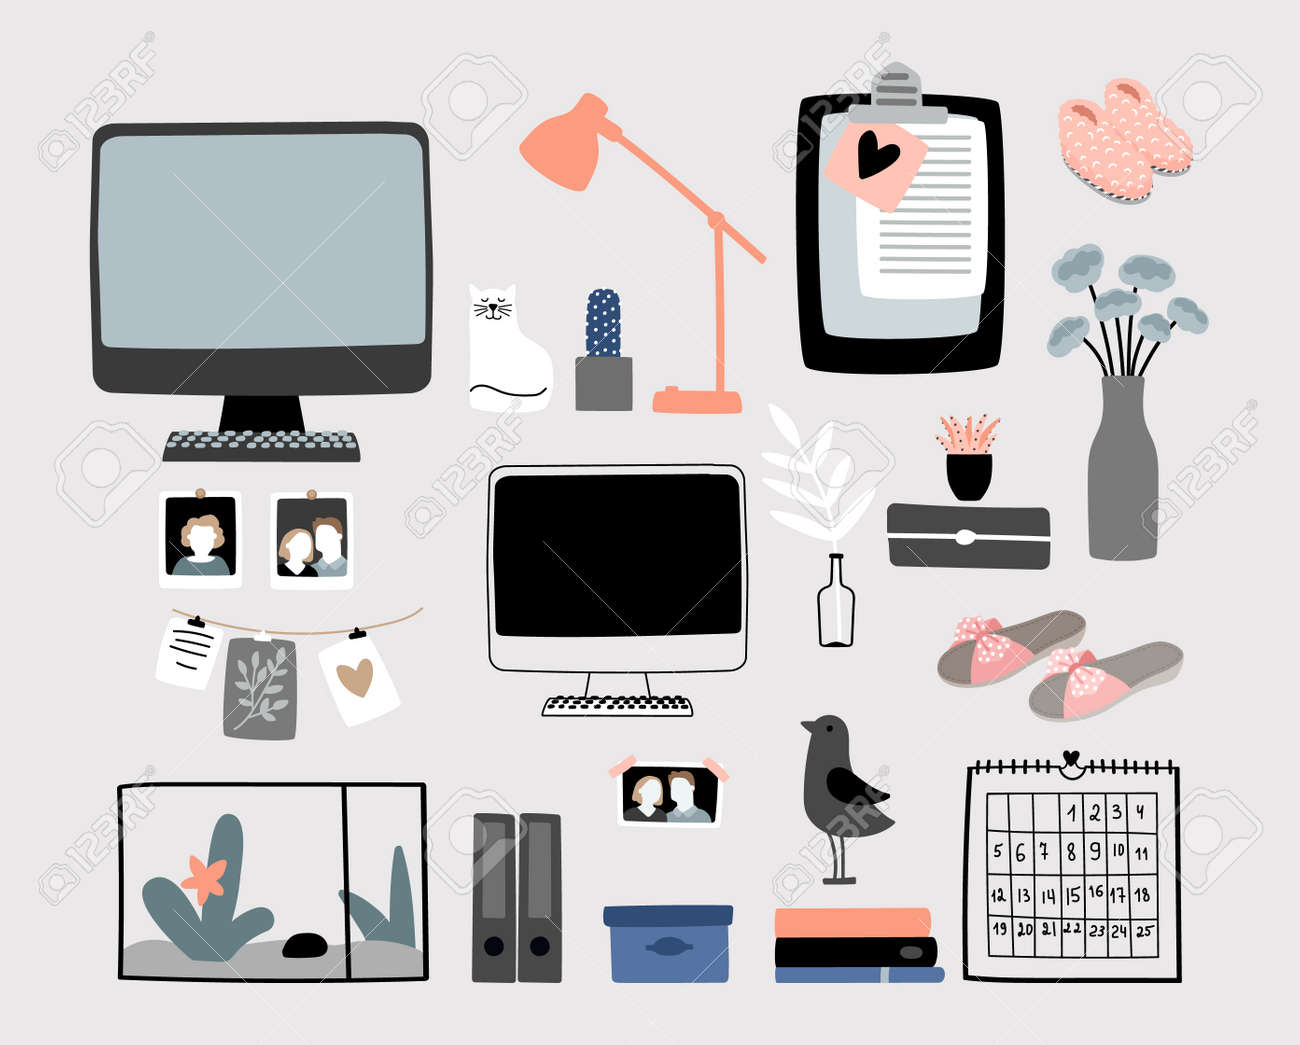 Cozy home accessories kit. Fluffy slippers, stationery, calendar lamp. Doodle computer monitor, lamp and cat vector set - 159042755